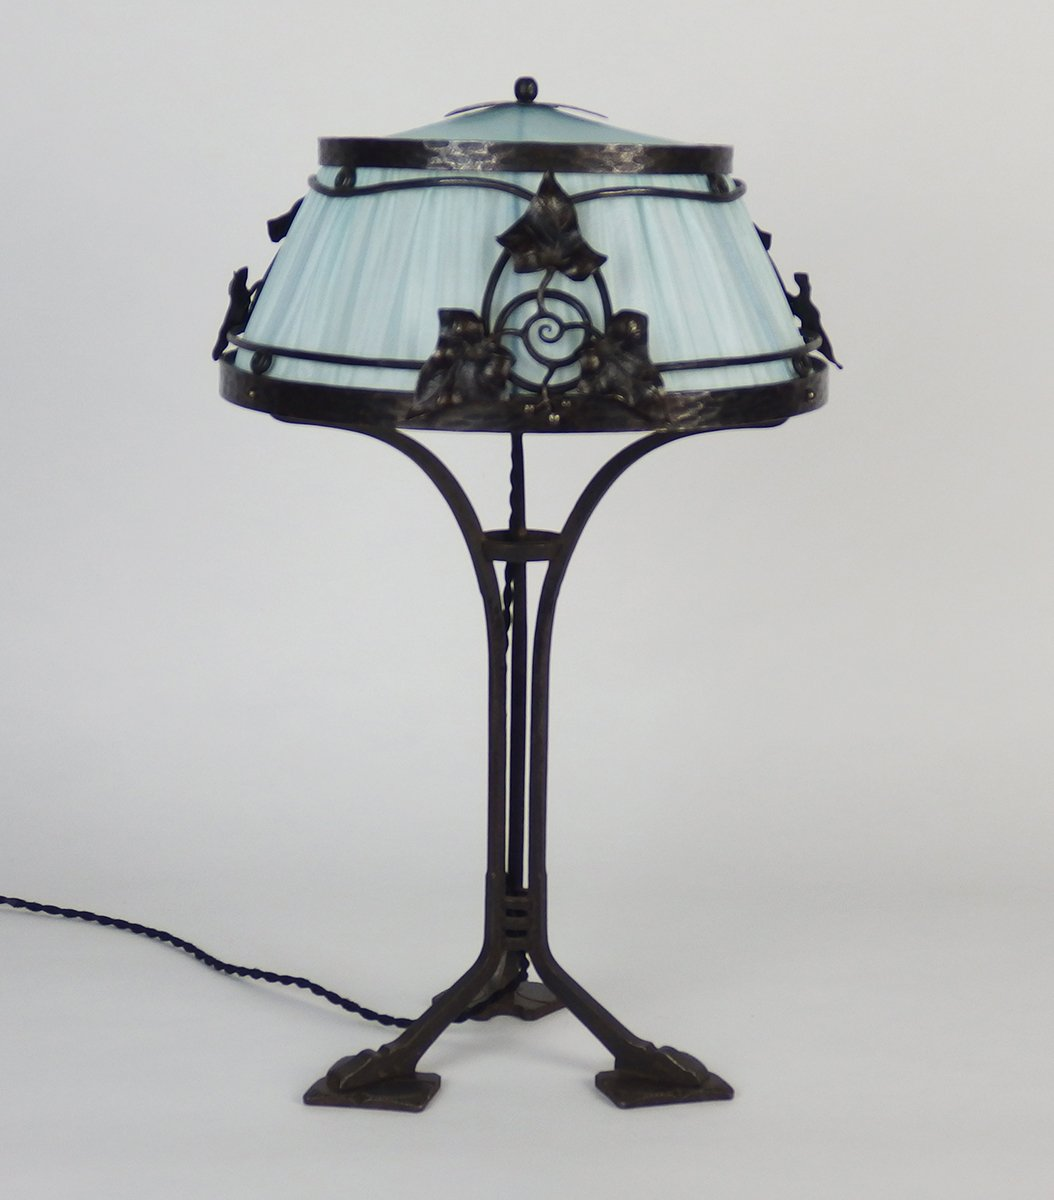 French Wrought Iron Table Lamp, 1910s